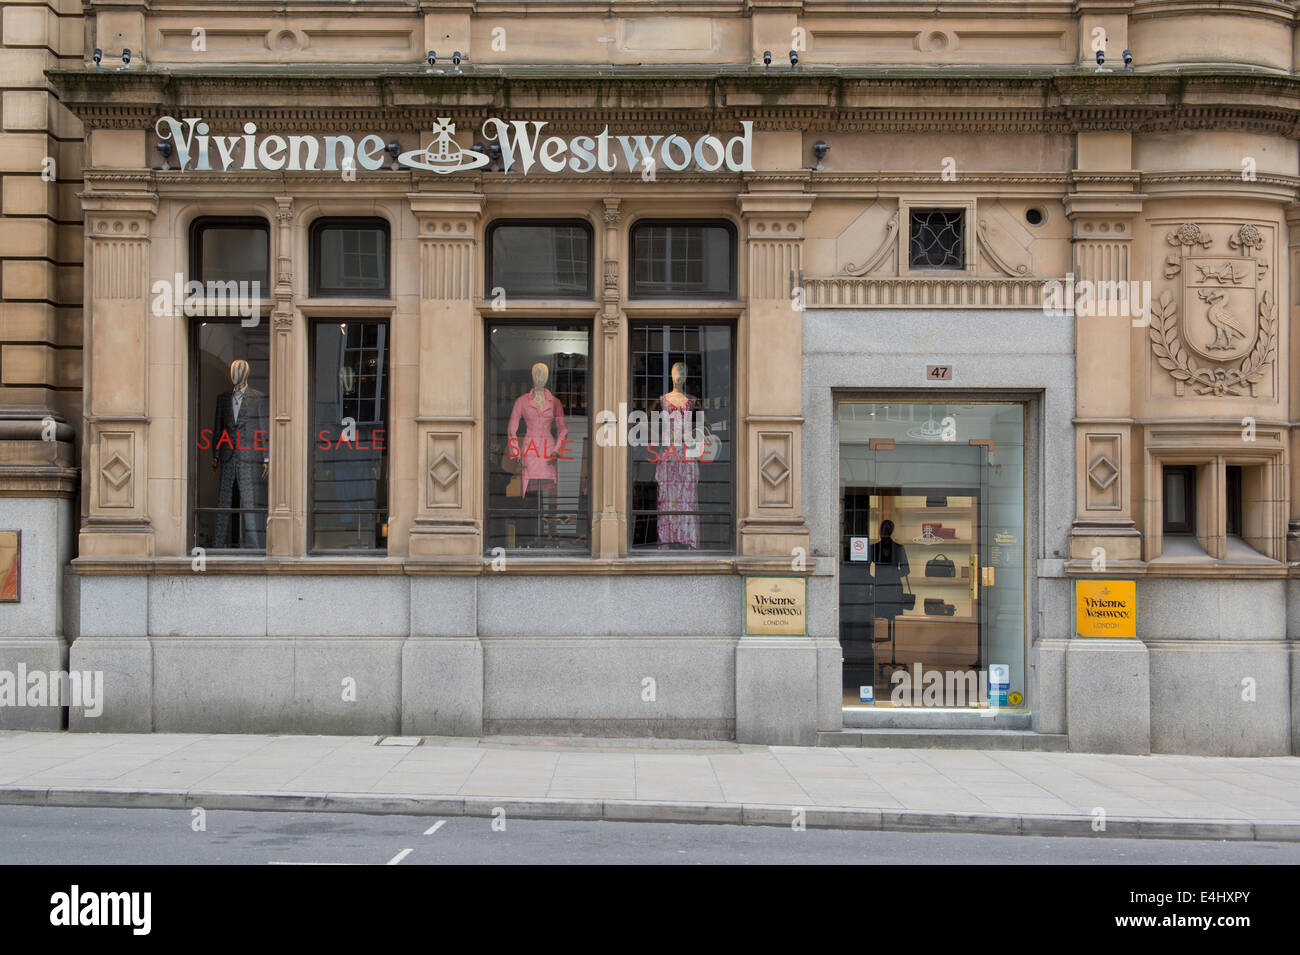 The storefront of the fashion retailer Vivienne Westwood in Spring Gardens Manchester. - Stock Image